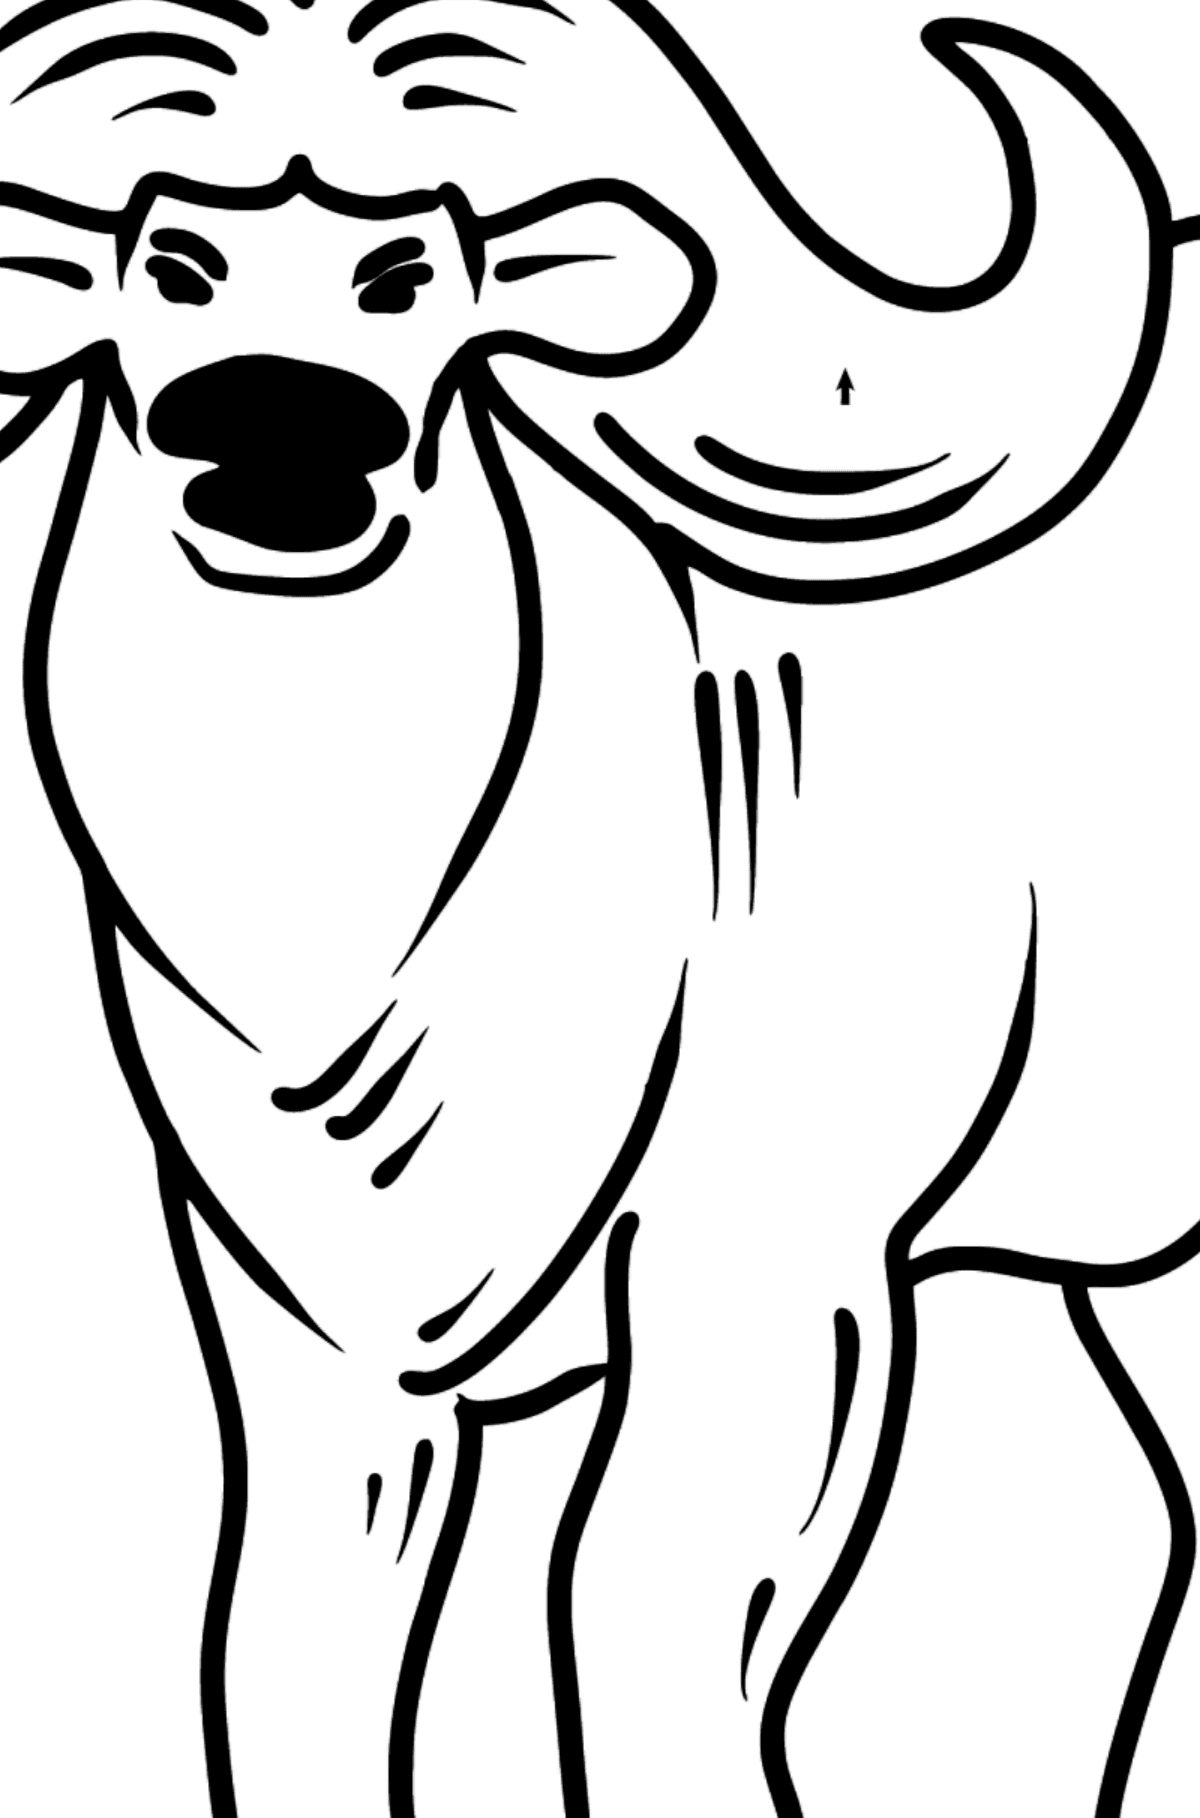 Buffalo coloring page - Coloring by Symbols for Kids